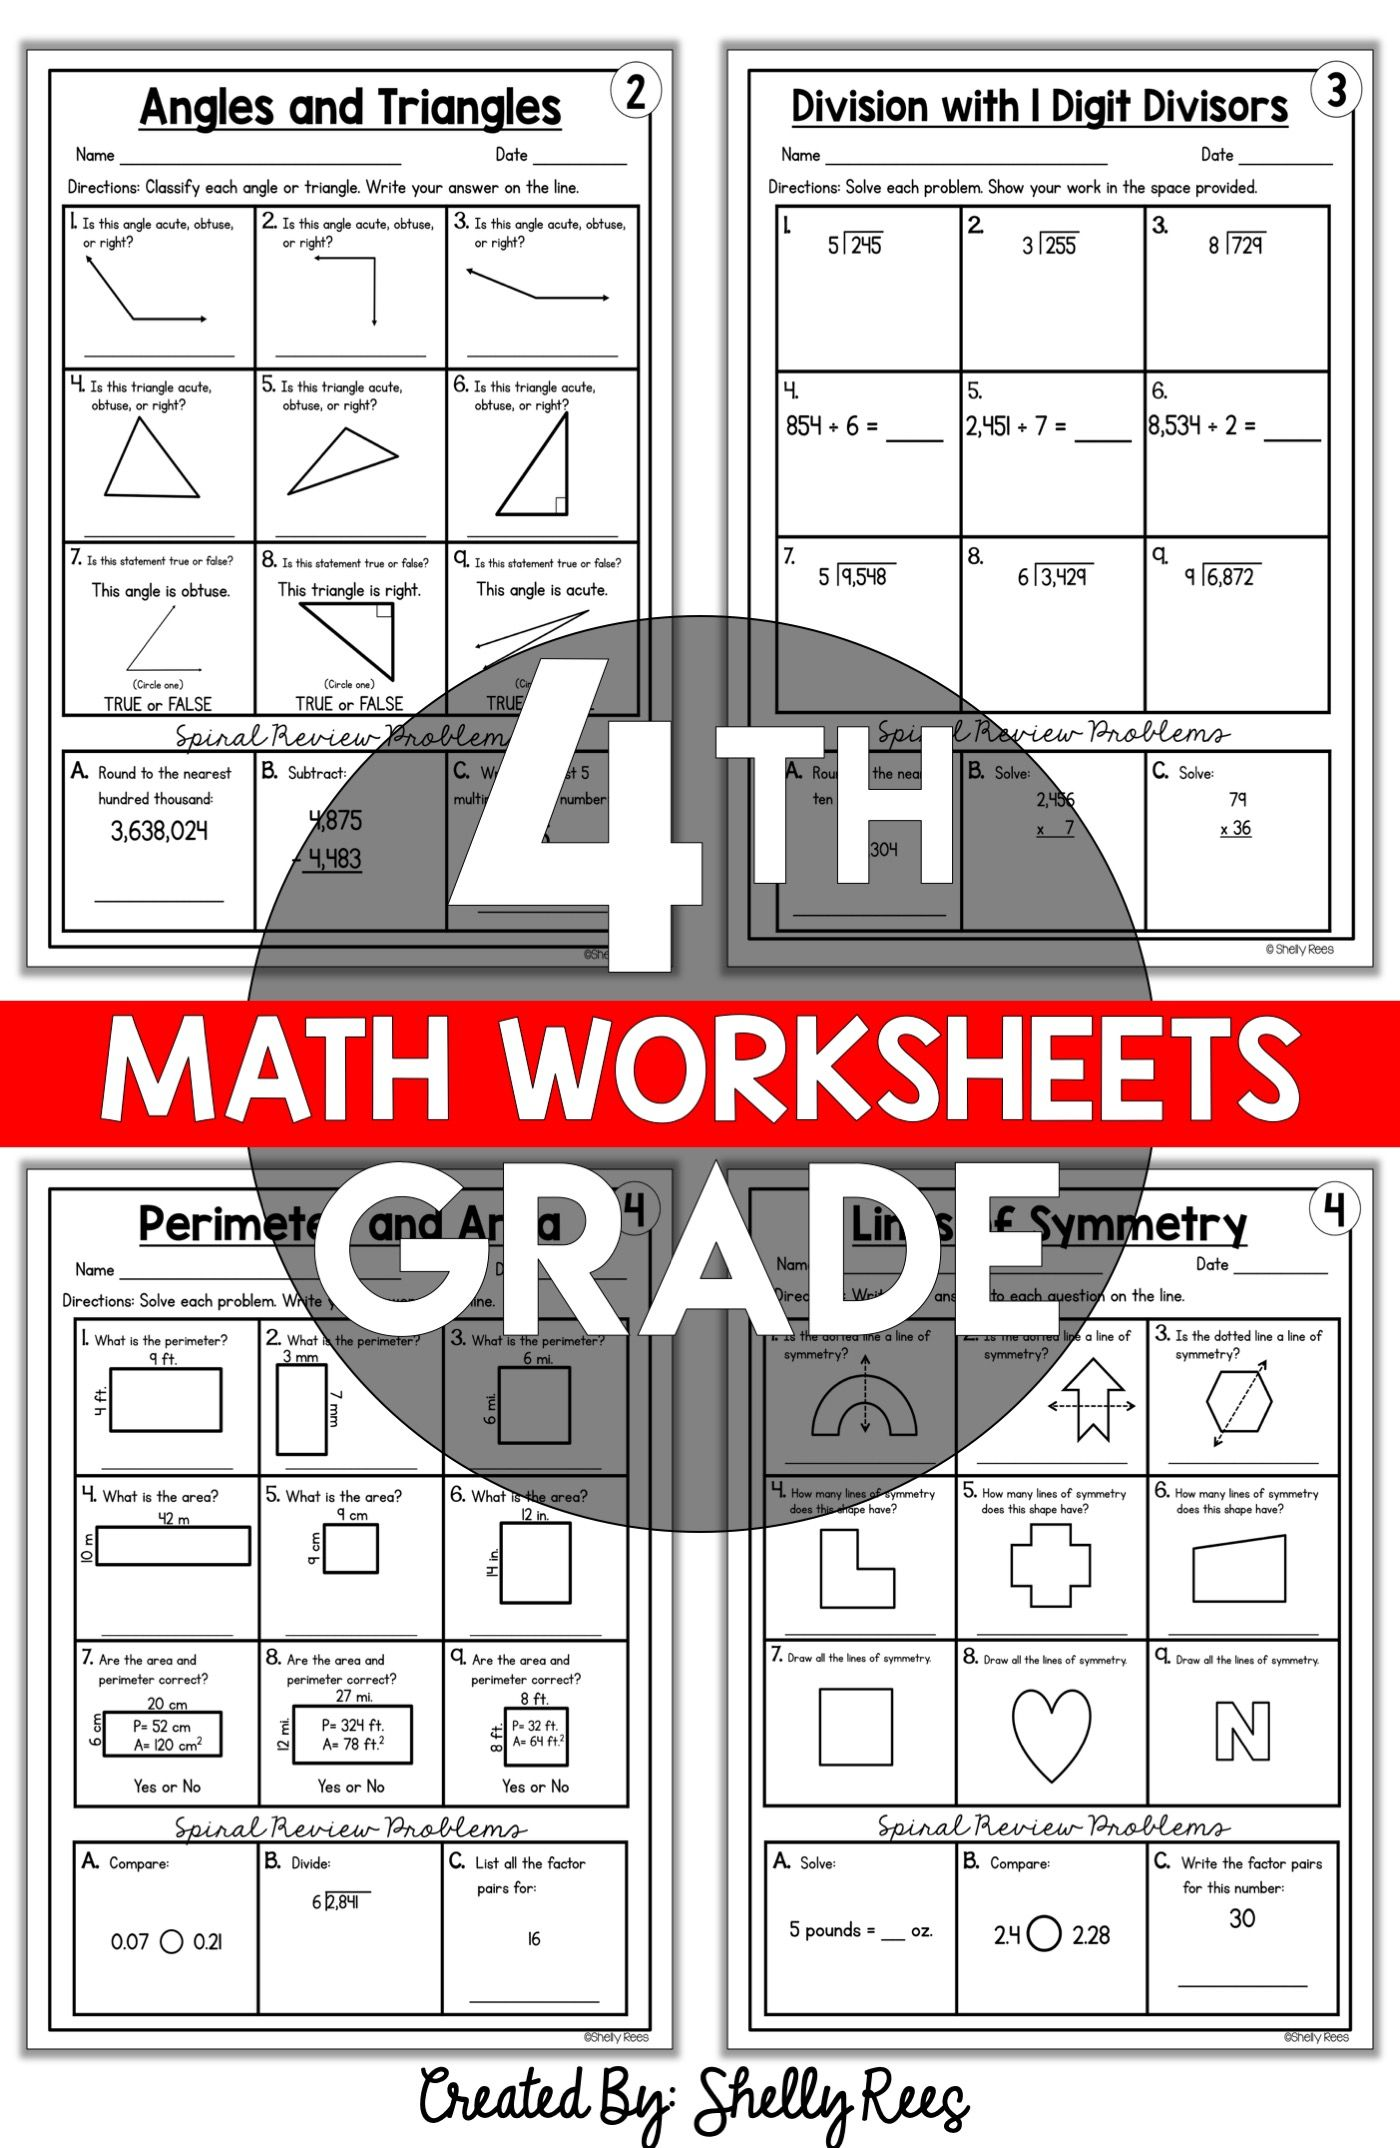 4th Grade Math Worksheets Free And Printable In 2020 4th Grade Math Worksheets Math Worksheets 4th Grade Math